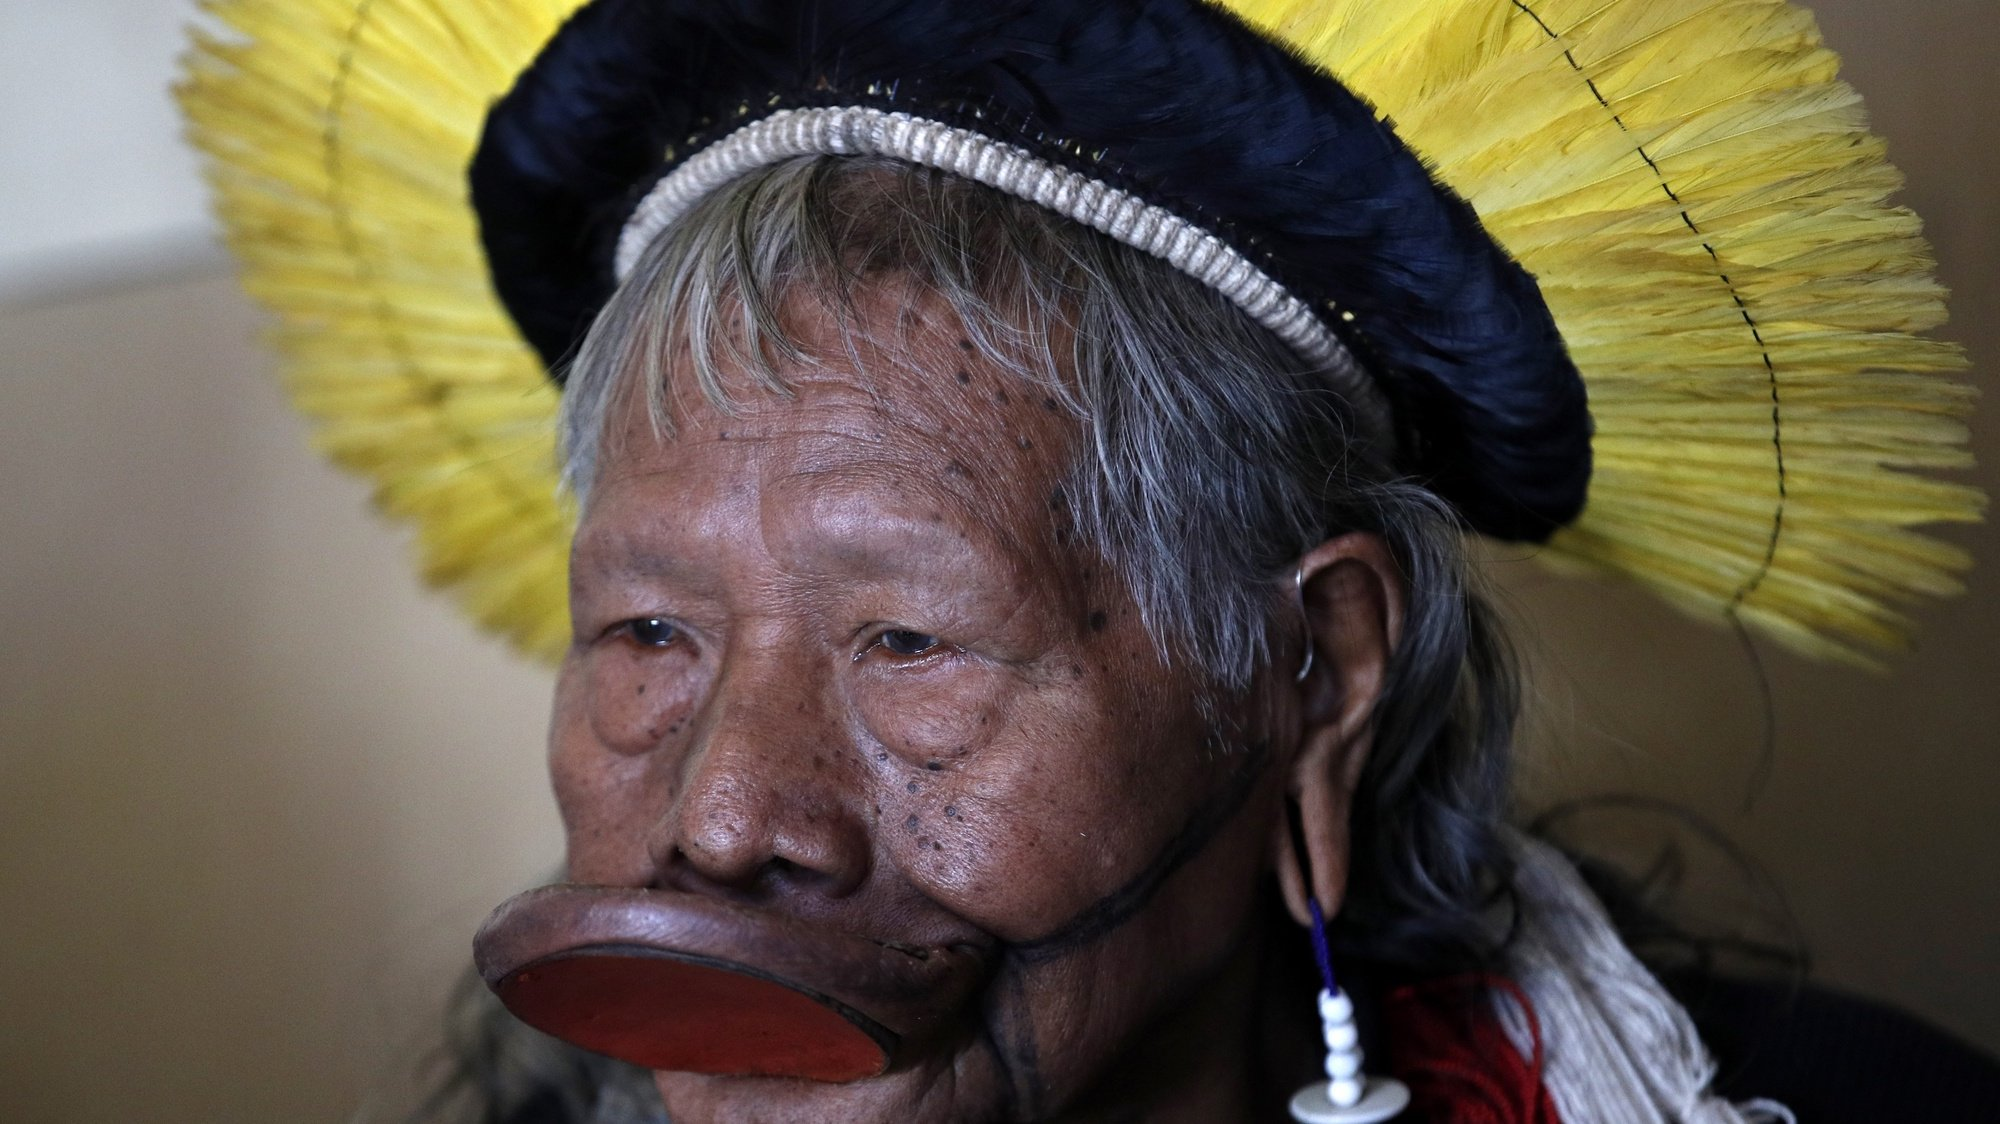 epa08554199 (FILE) - Indigenous Brazilian chief Kayapo Raoni Metuktire looks on prior to his meeting with French Ecology Minister Francois de Rugy, at the Ministry for Ecology in Paris, France, 13 May 2019 (reissued 19 July 2020). According to media reports, Raoni, 90, was hospitalized on 18 July with digestive bleeding in Sinop, Mato Grosso, Brazil.  EPA/YOAN VALAT